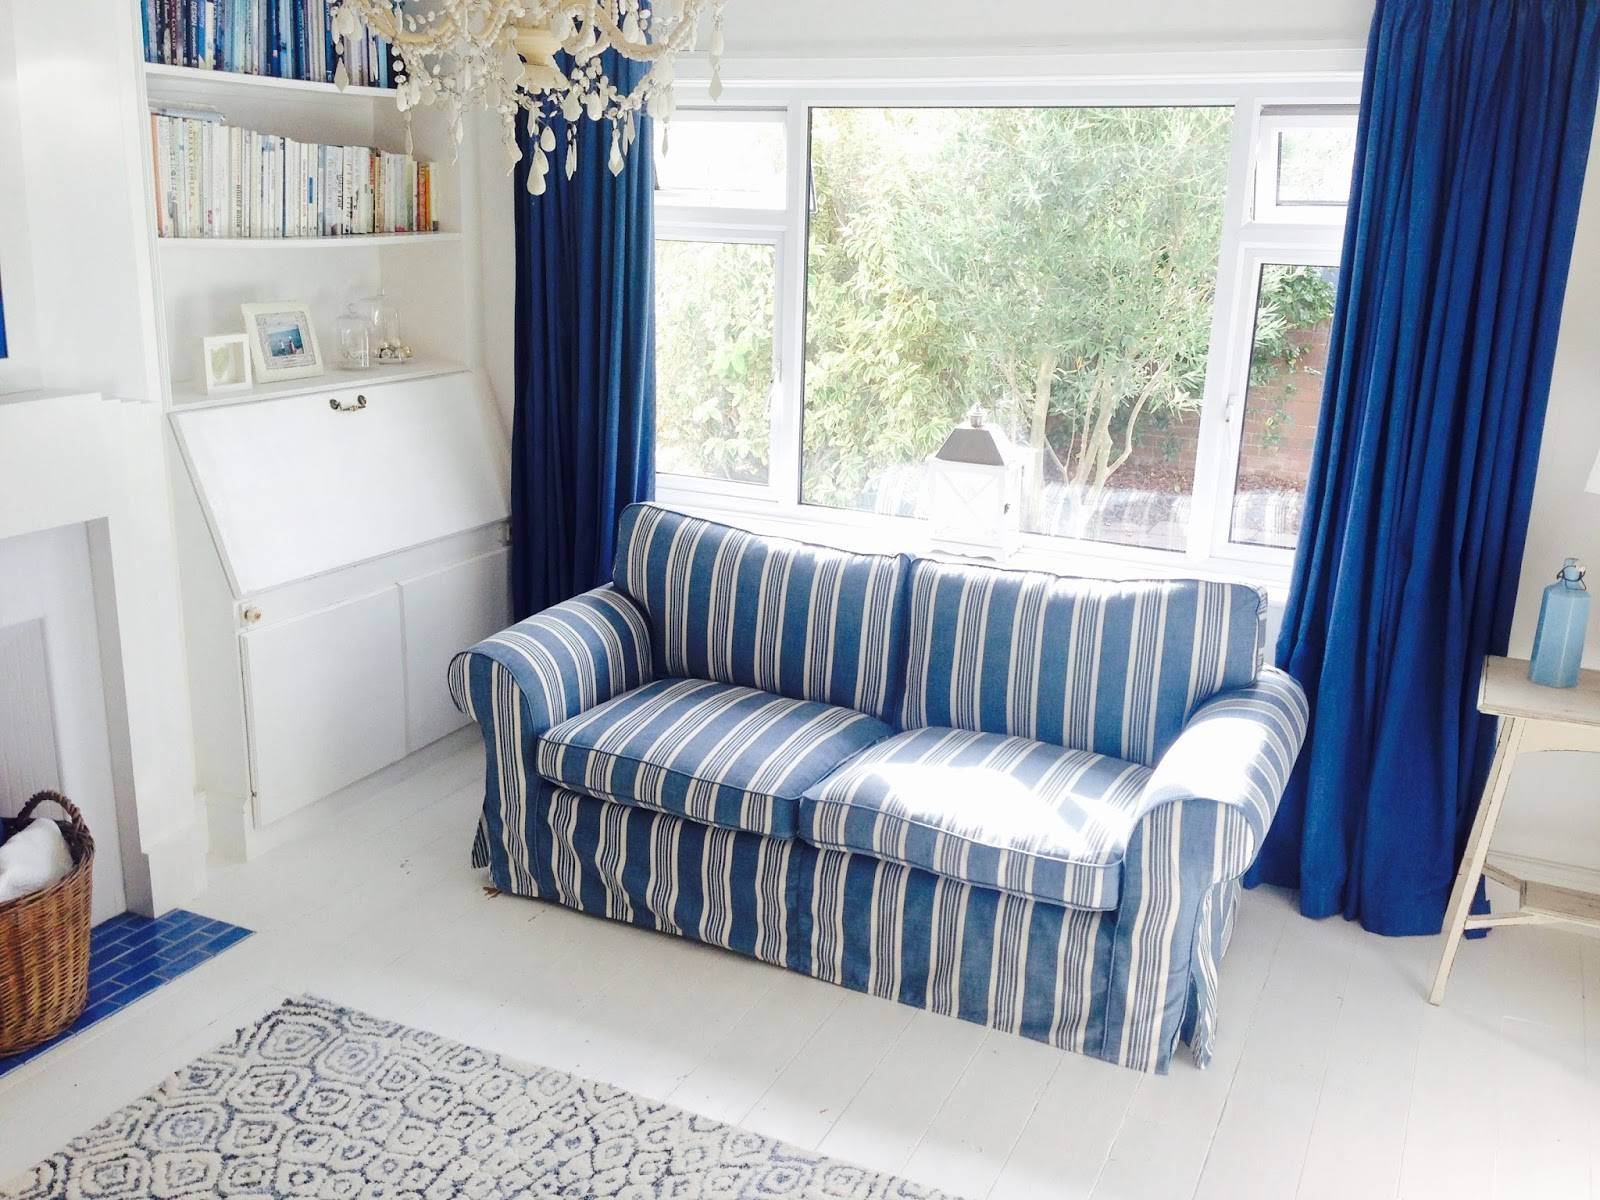 15 Photos Blue and White Striped Sofas